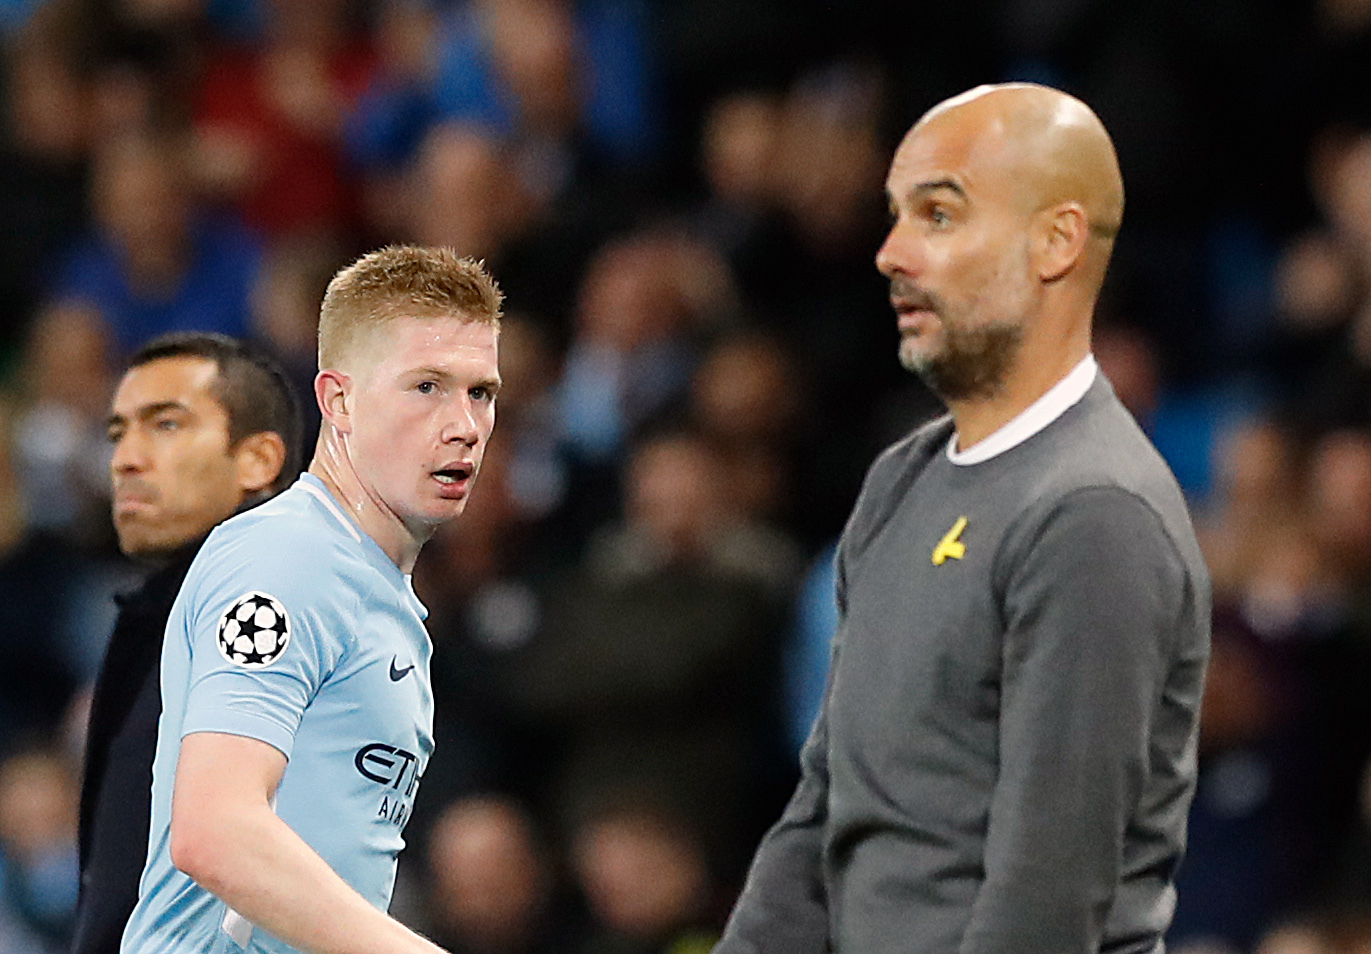 Pep Guardiola and De Bruyne, Wolves vs Man City odds